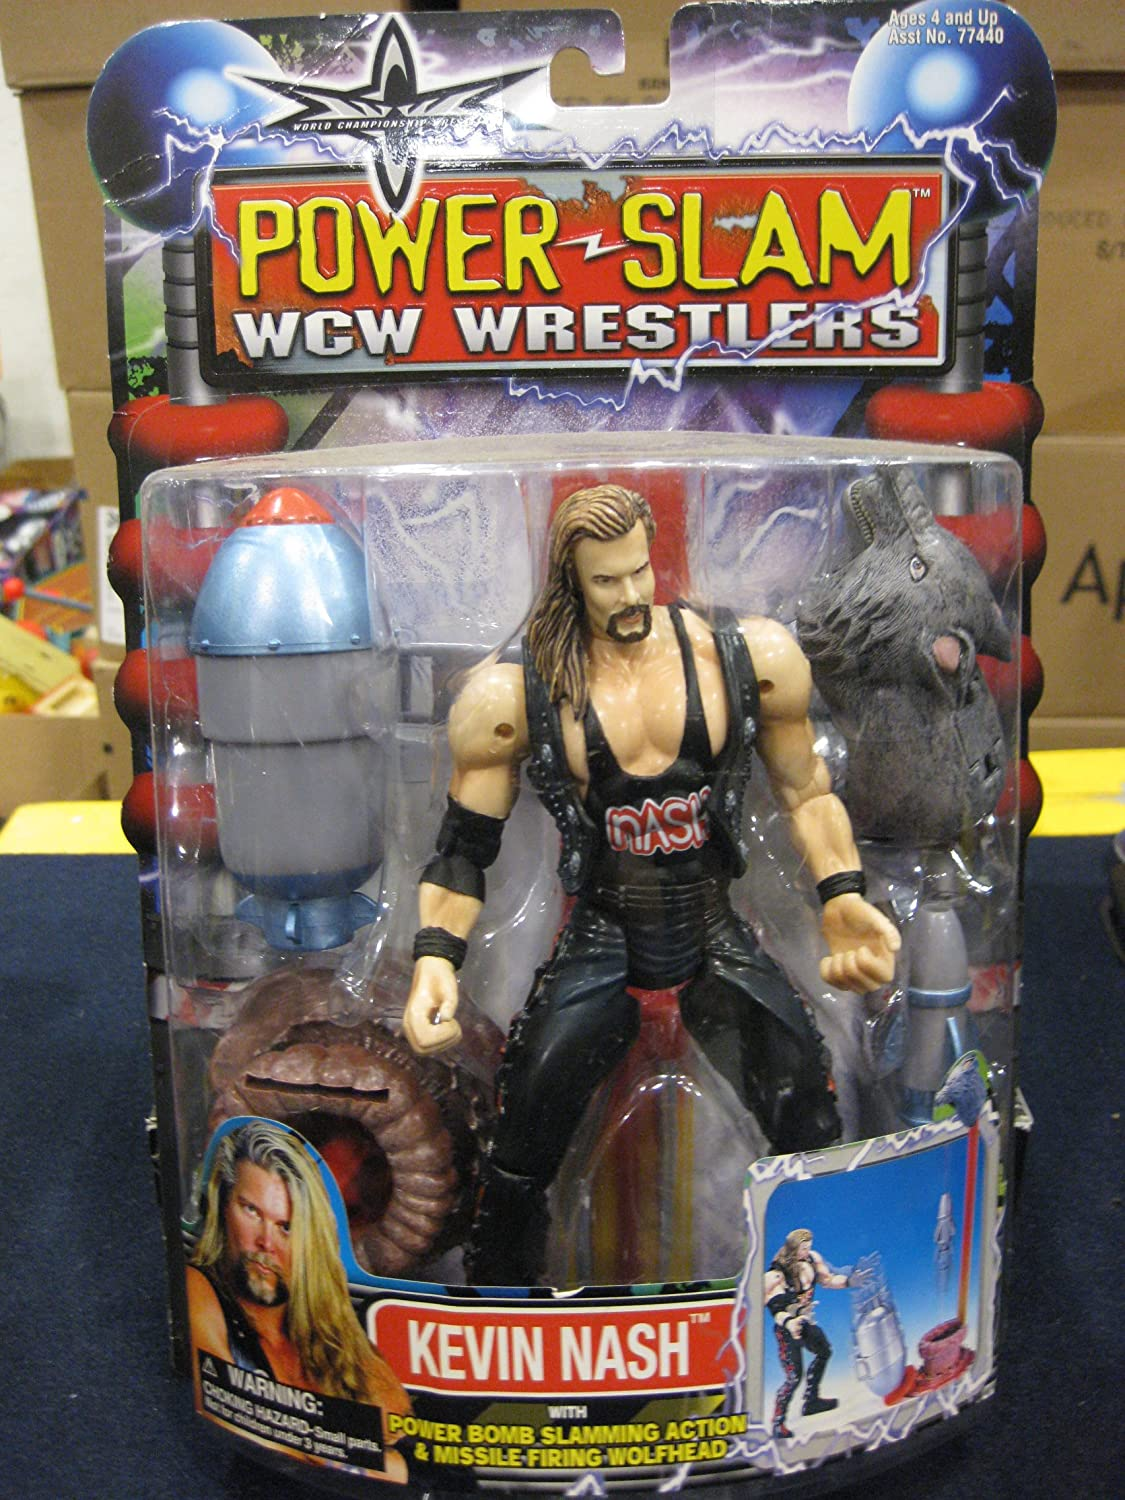 WCW POWER SLAM WRESTLERS- KEVIN NASH- MOST RARE WCW FIGURE EVER MADE by TOy Biz